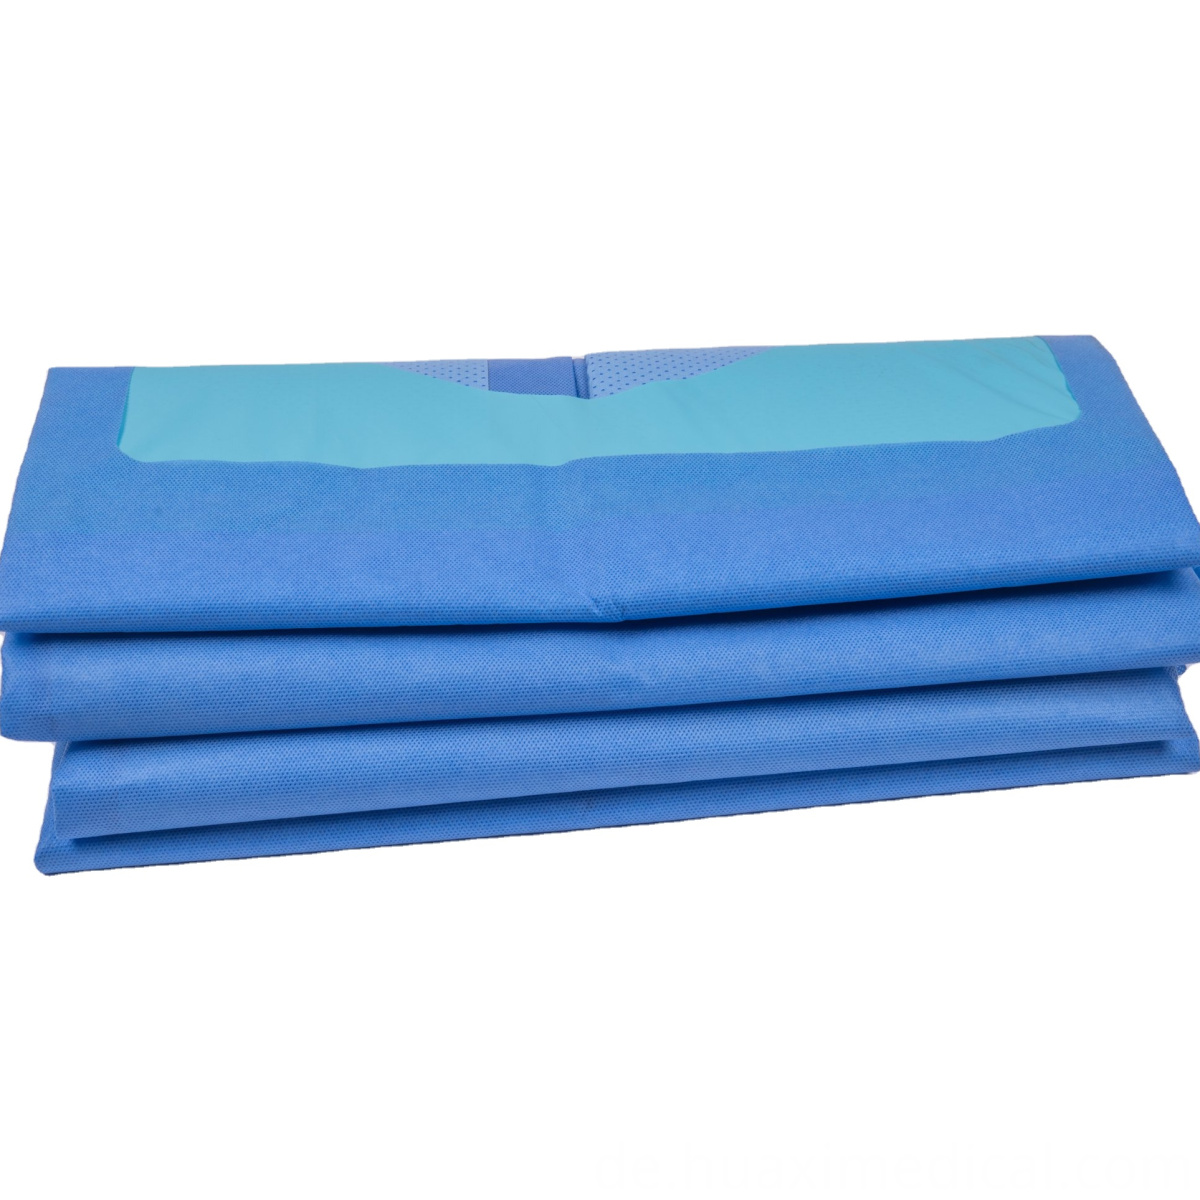 medical surgical drape